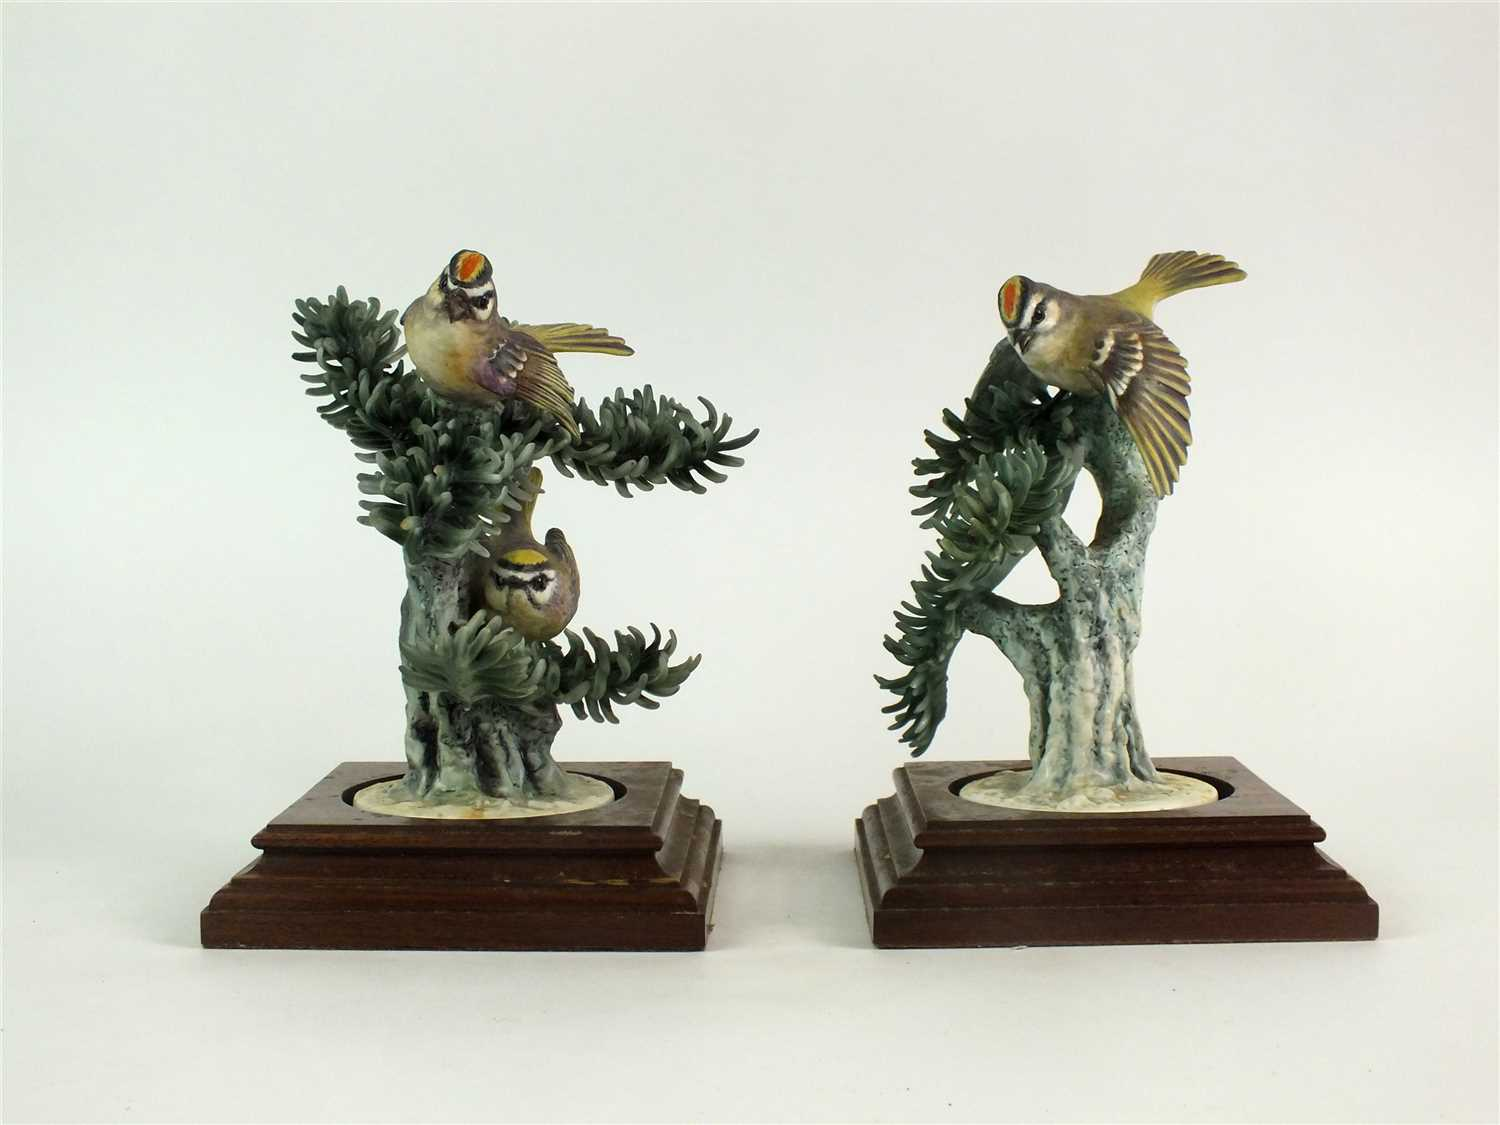 Lot 79-A pair of Royal Worcester models of Kinglets